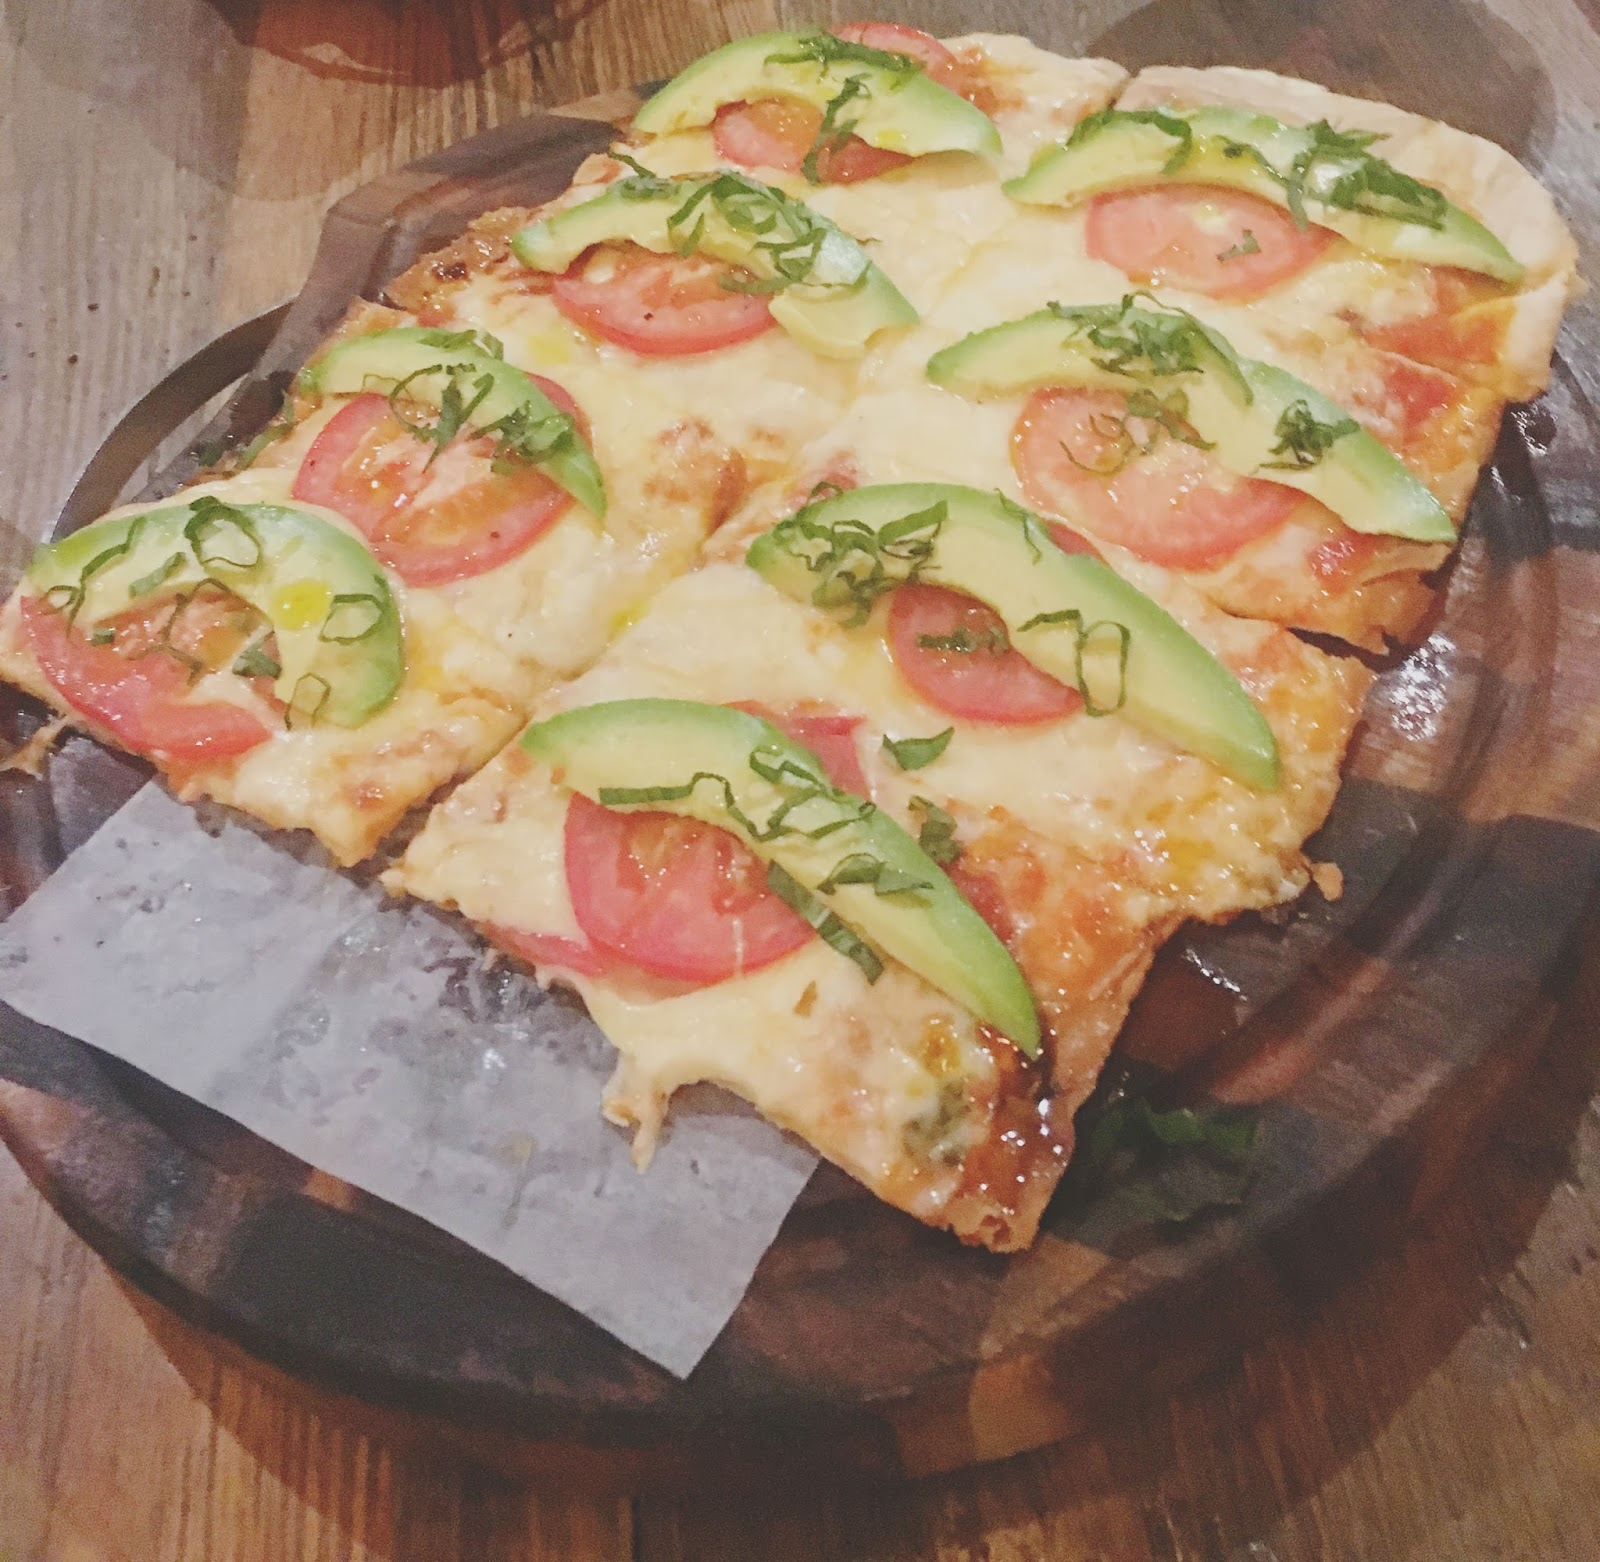 basil, tomato, mozzarella flatbread at Sal y Pimienta - A South American restaurant in Houston